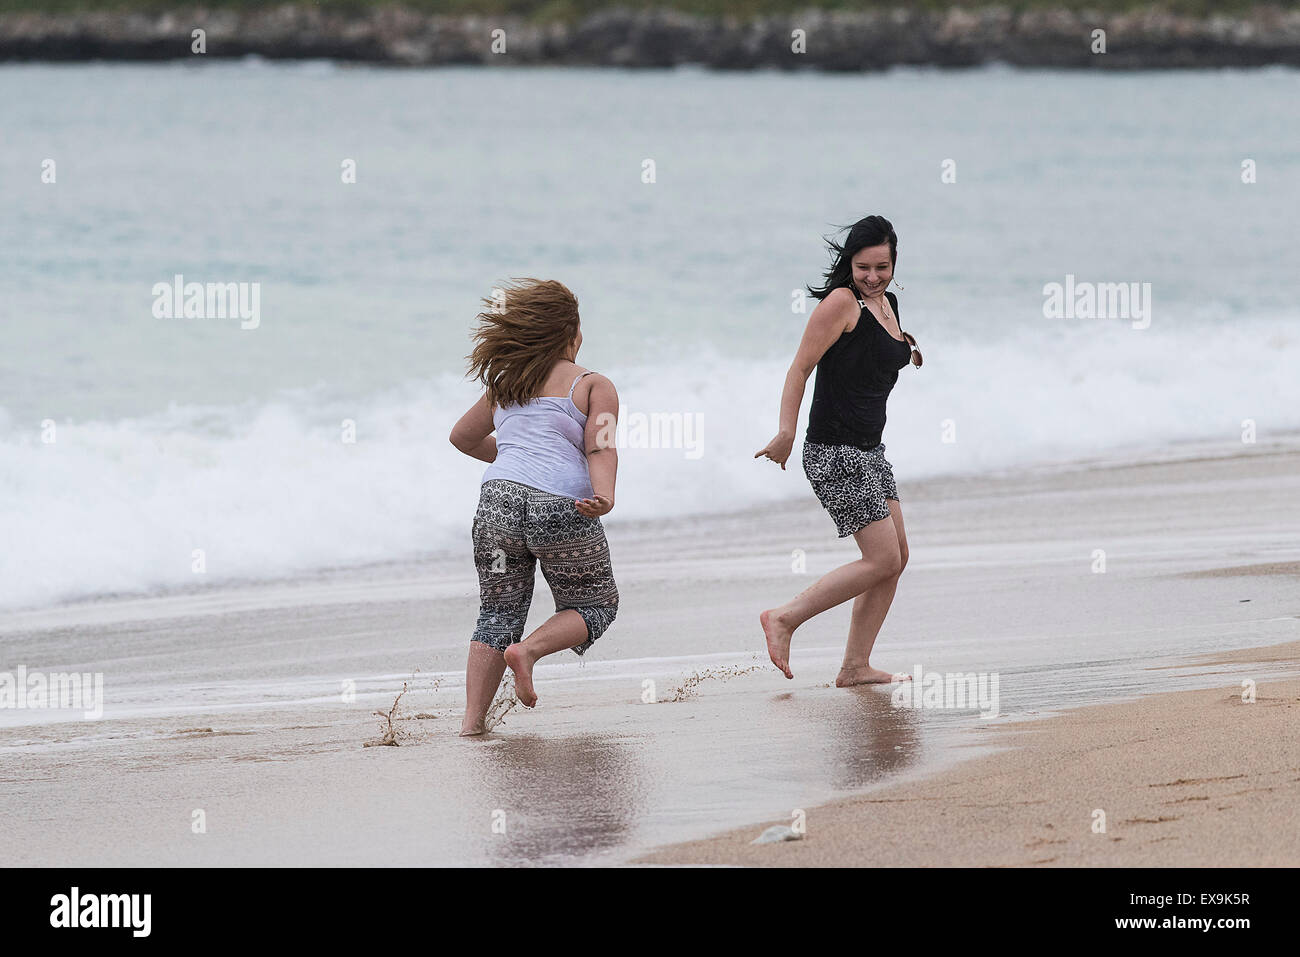 Holidaymakers playingnin the sea at Fistral beach in Newquay, Cornwall. - Stock Image